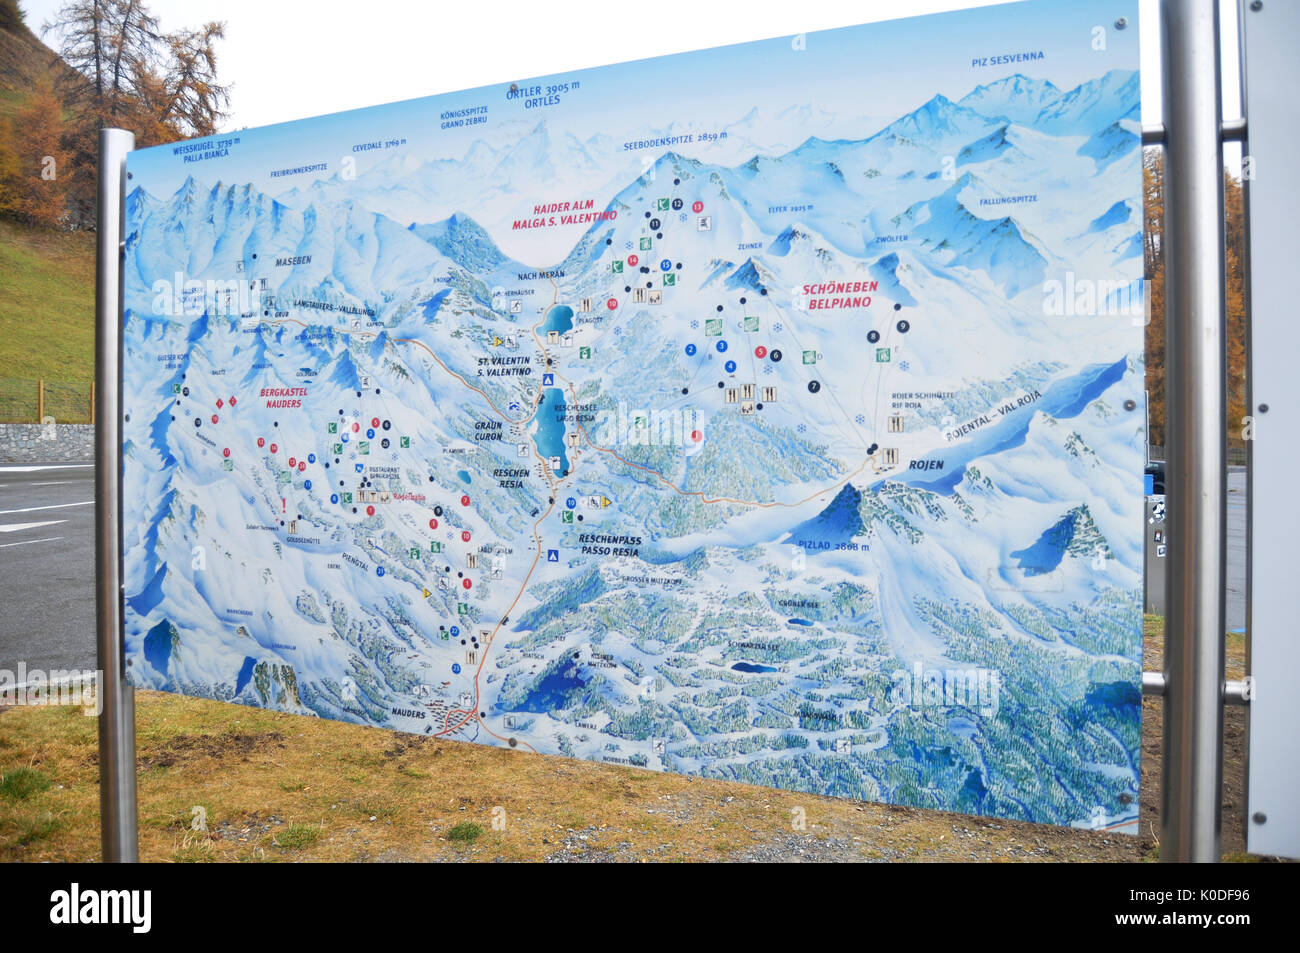 Map of Skiparadise Nauders in countryside at TrentinoAlto valley in